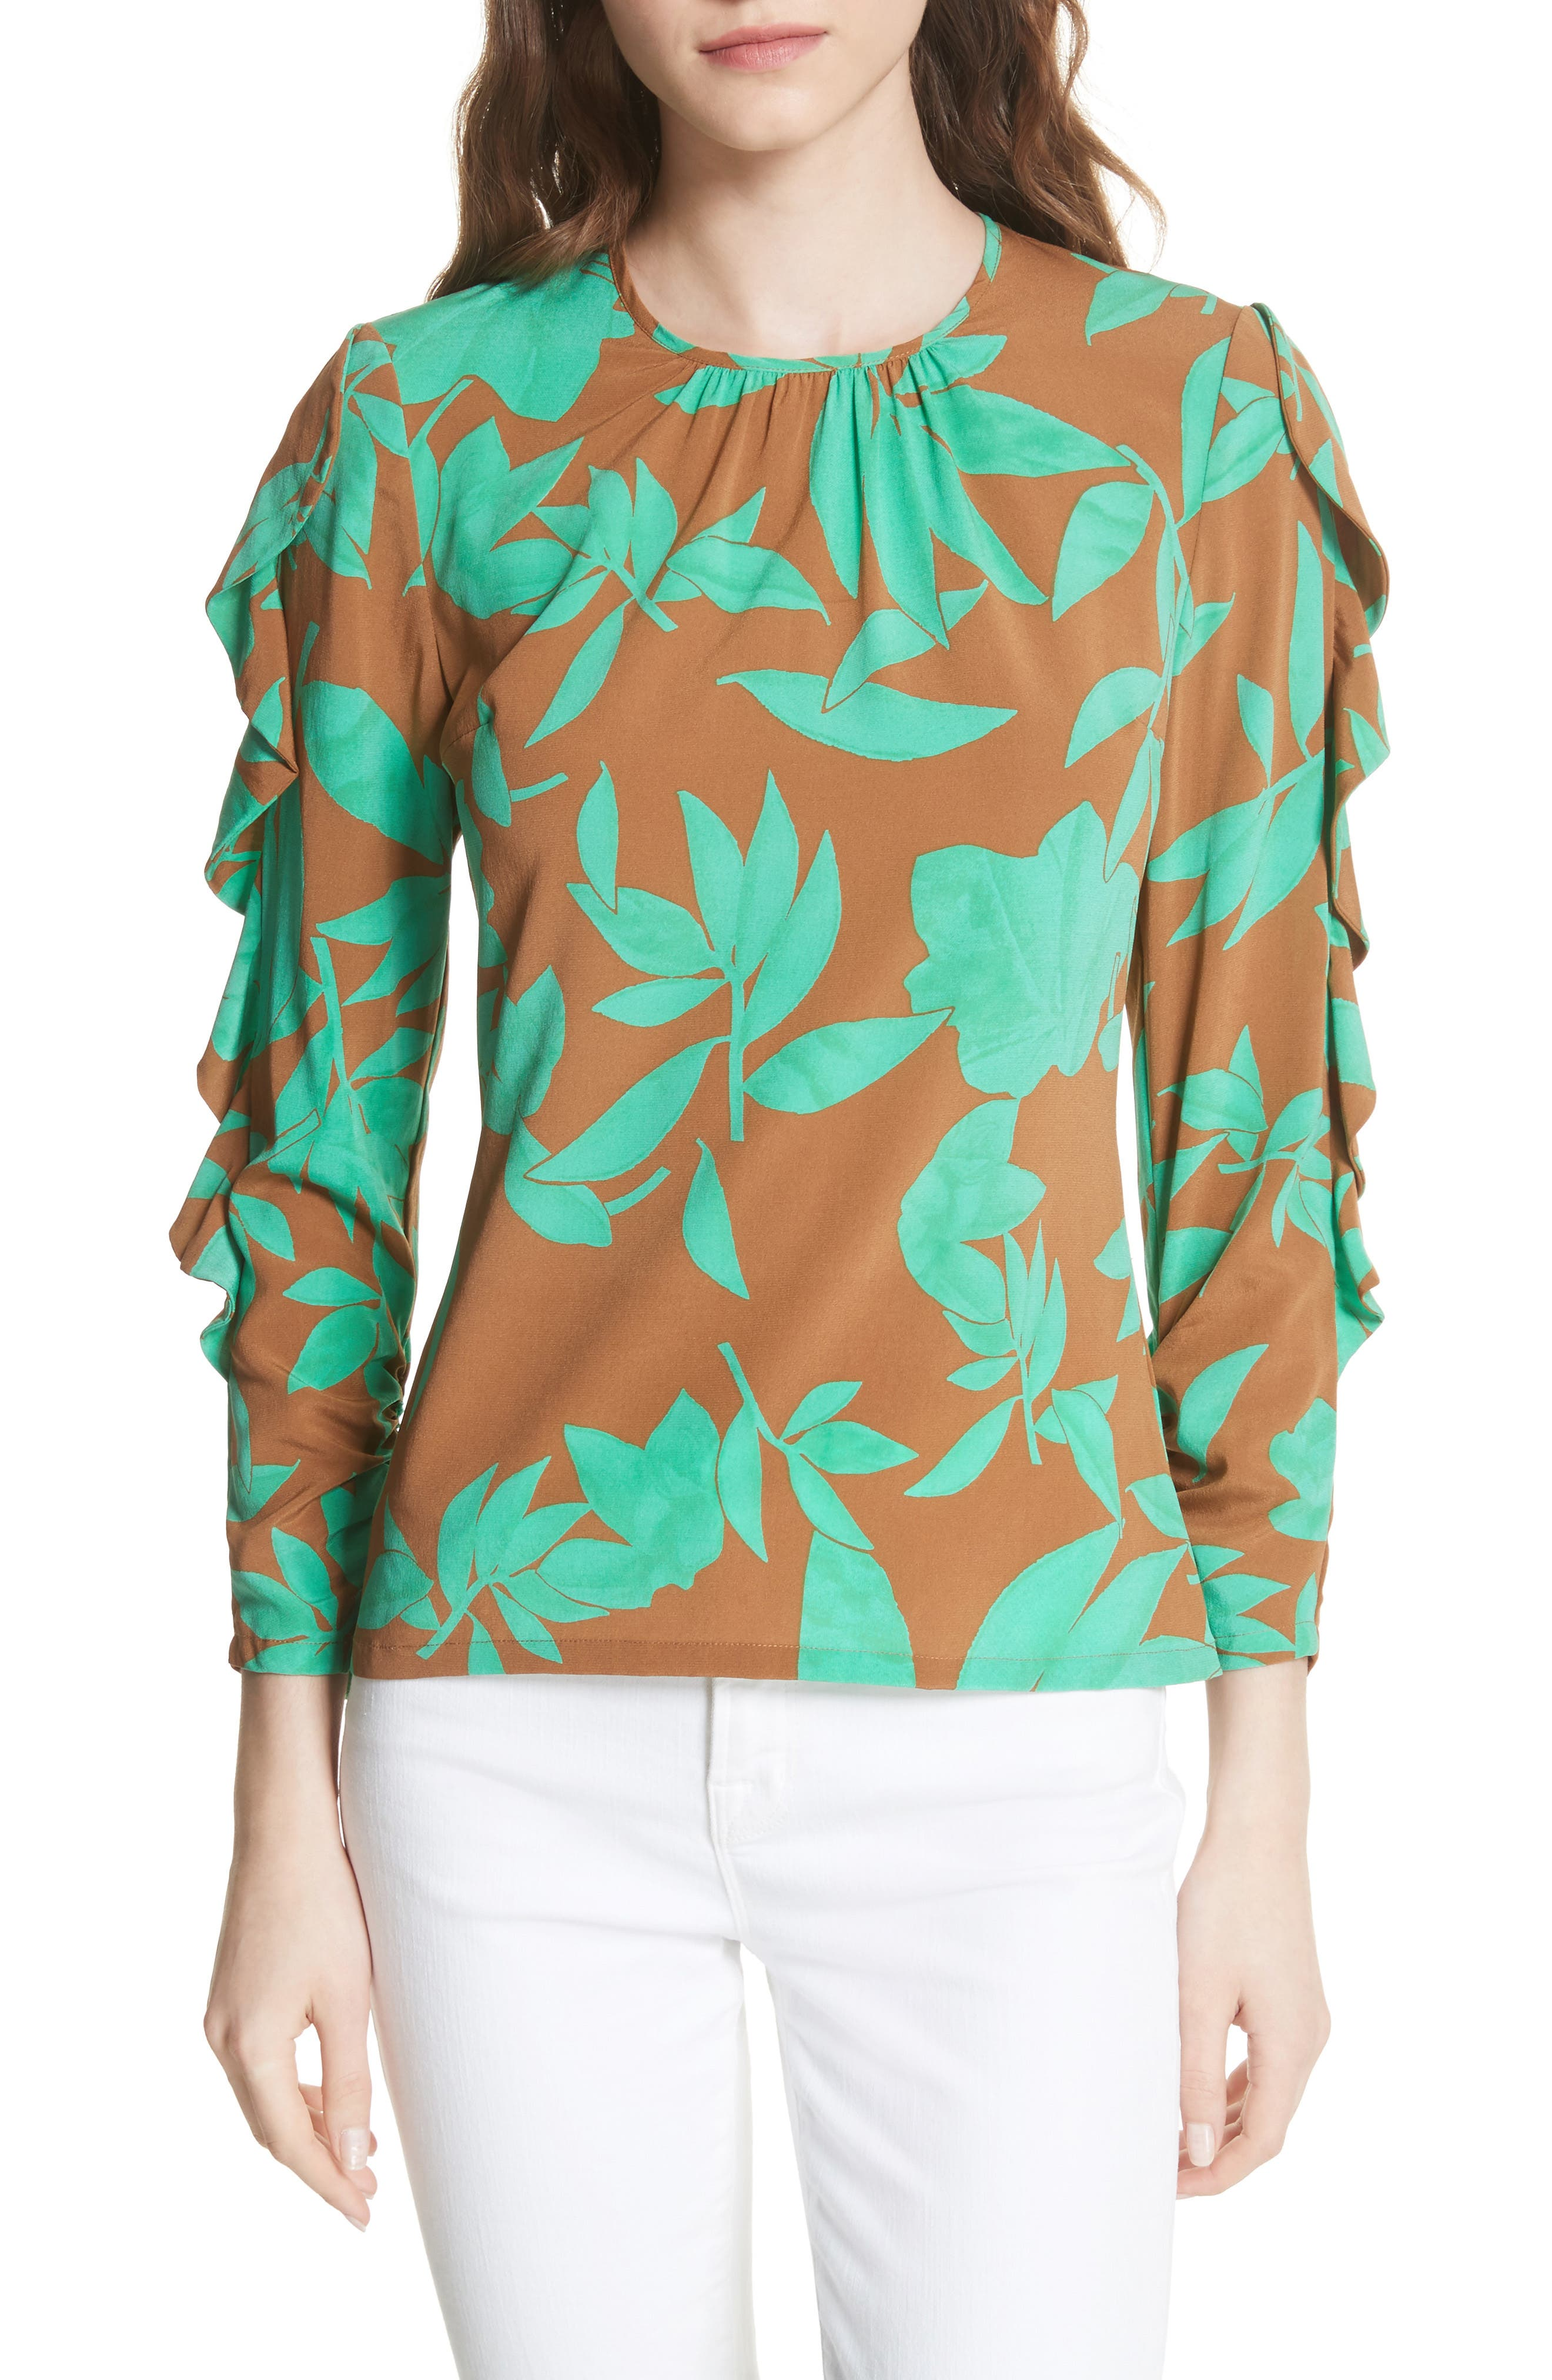 Frilled Floral Stretch Silk Top,                             Main thumbnail 1, color,                             Acorn/ Jade